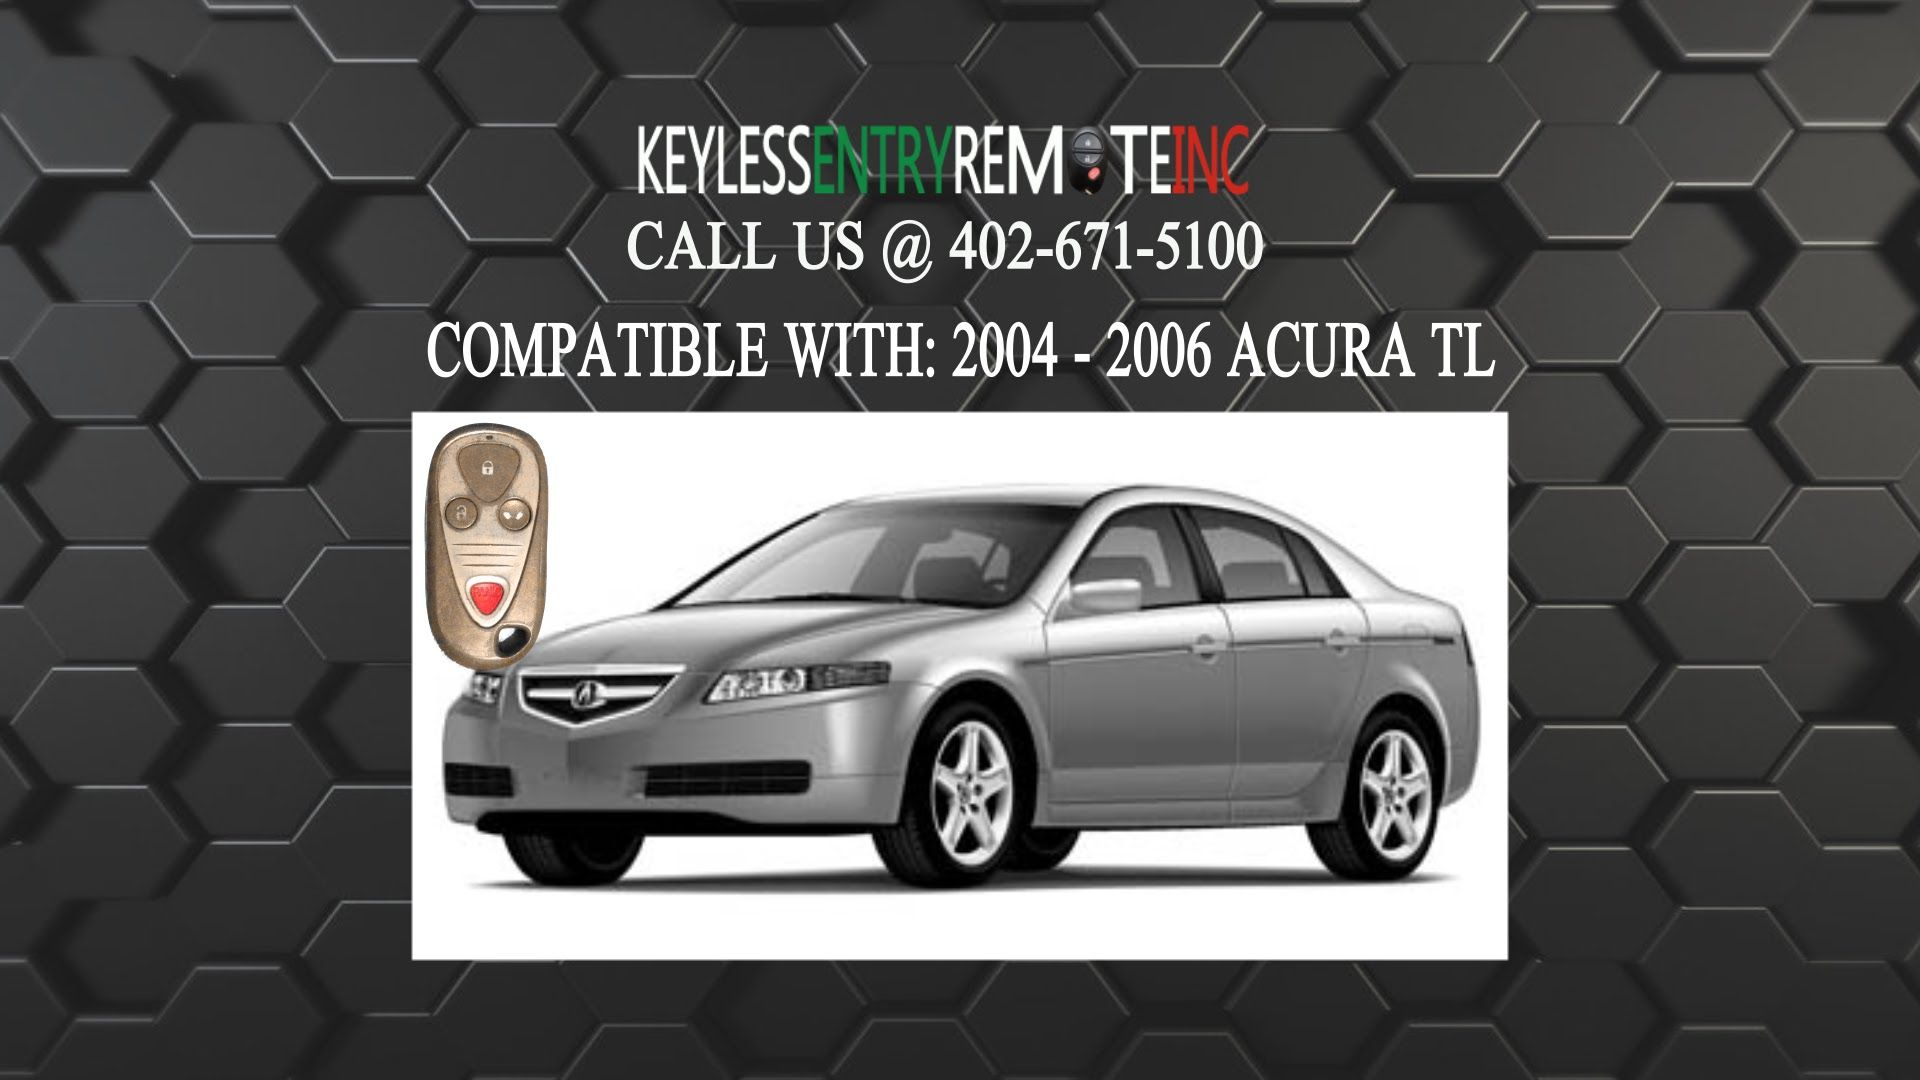 medium resolution of how to replace acura tl key fob battery 2004 2006